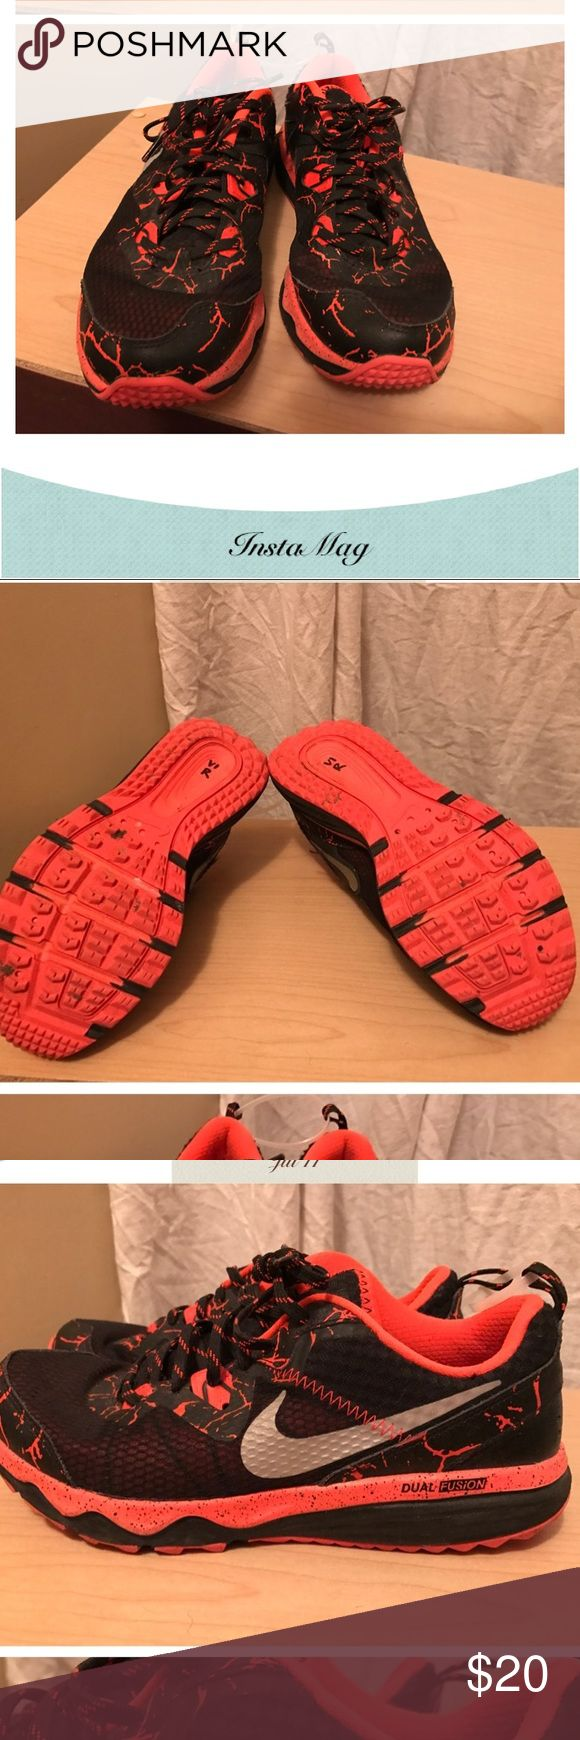 NIKE Dual Fusion Trail Running Shoes sz 7Y Nike Dual Fusion trail running shoes in Black and Orange Lava. Gently Worn. Smoke Free Home. pet Friendly Home. Nike Shoes Athletic Shoes